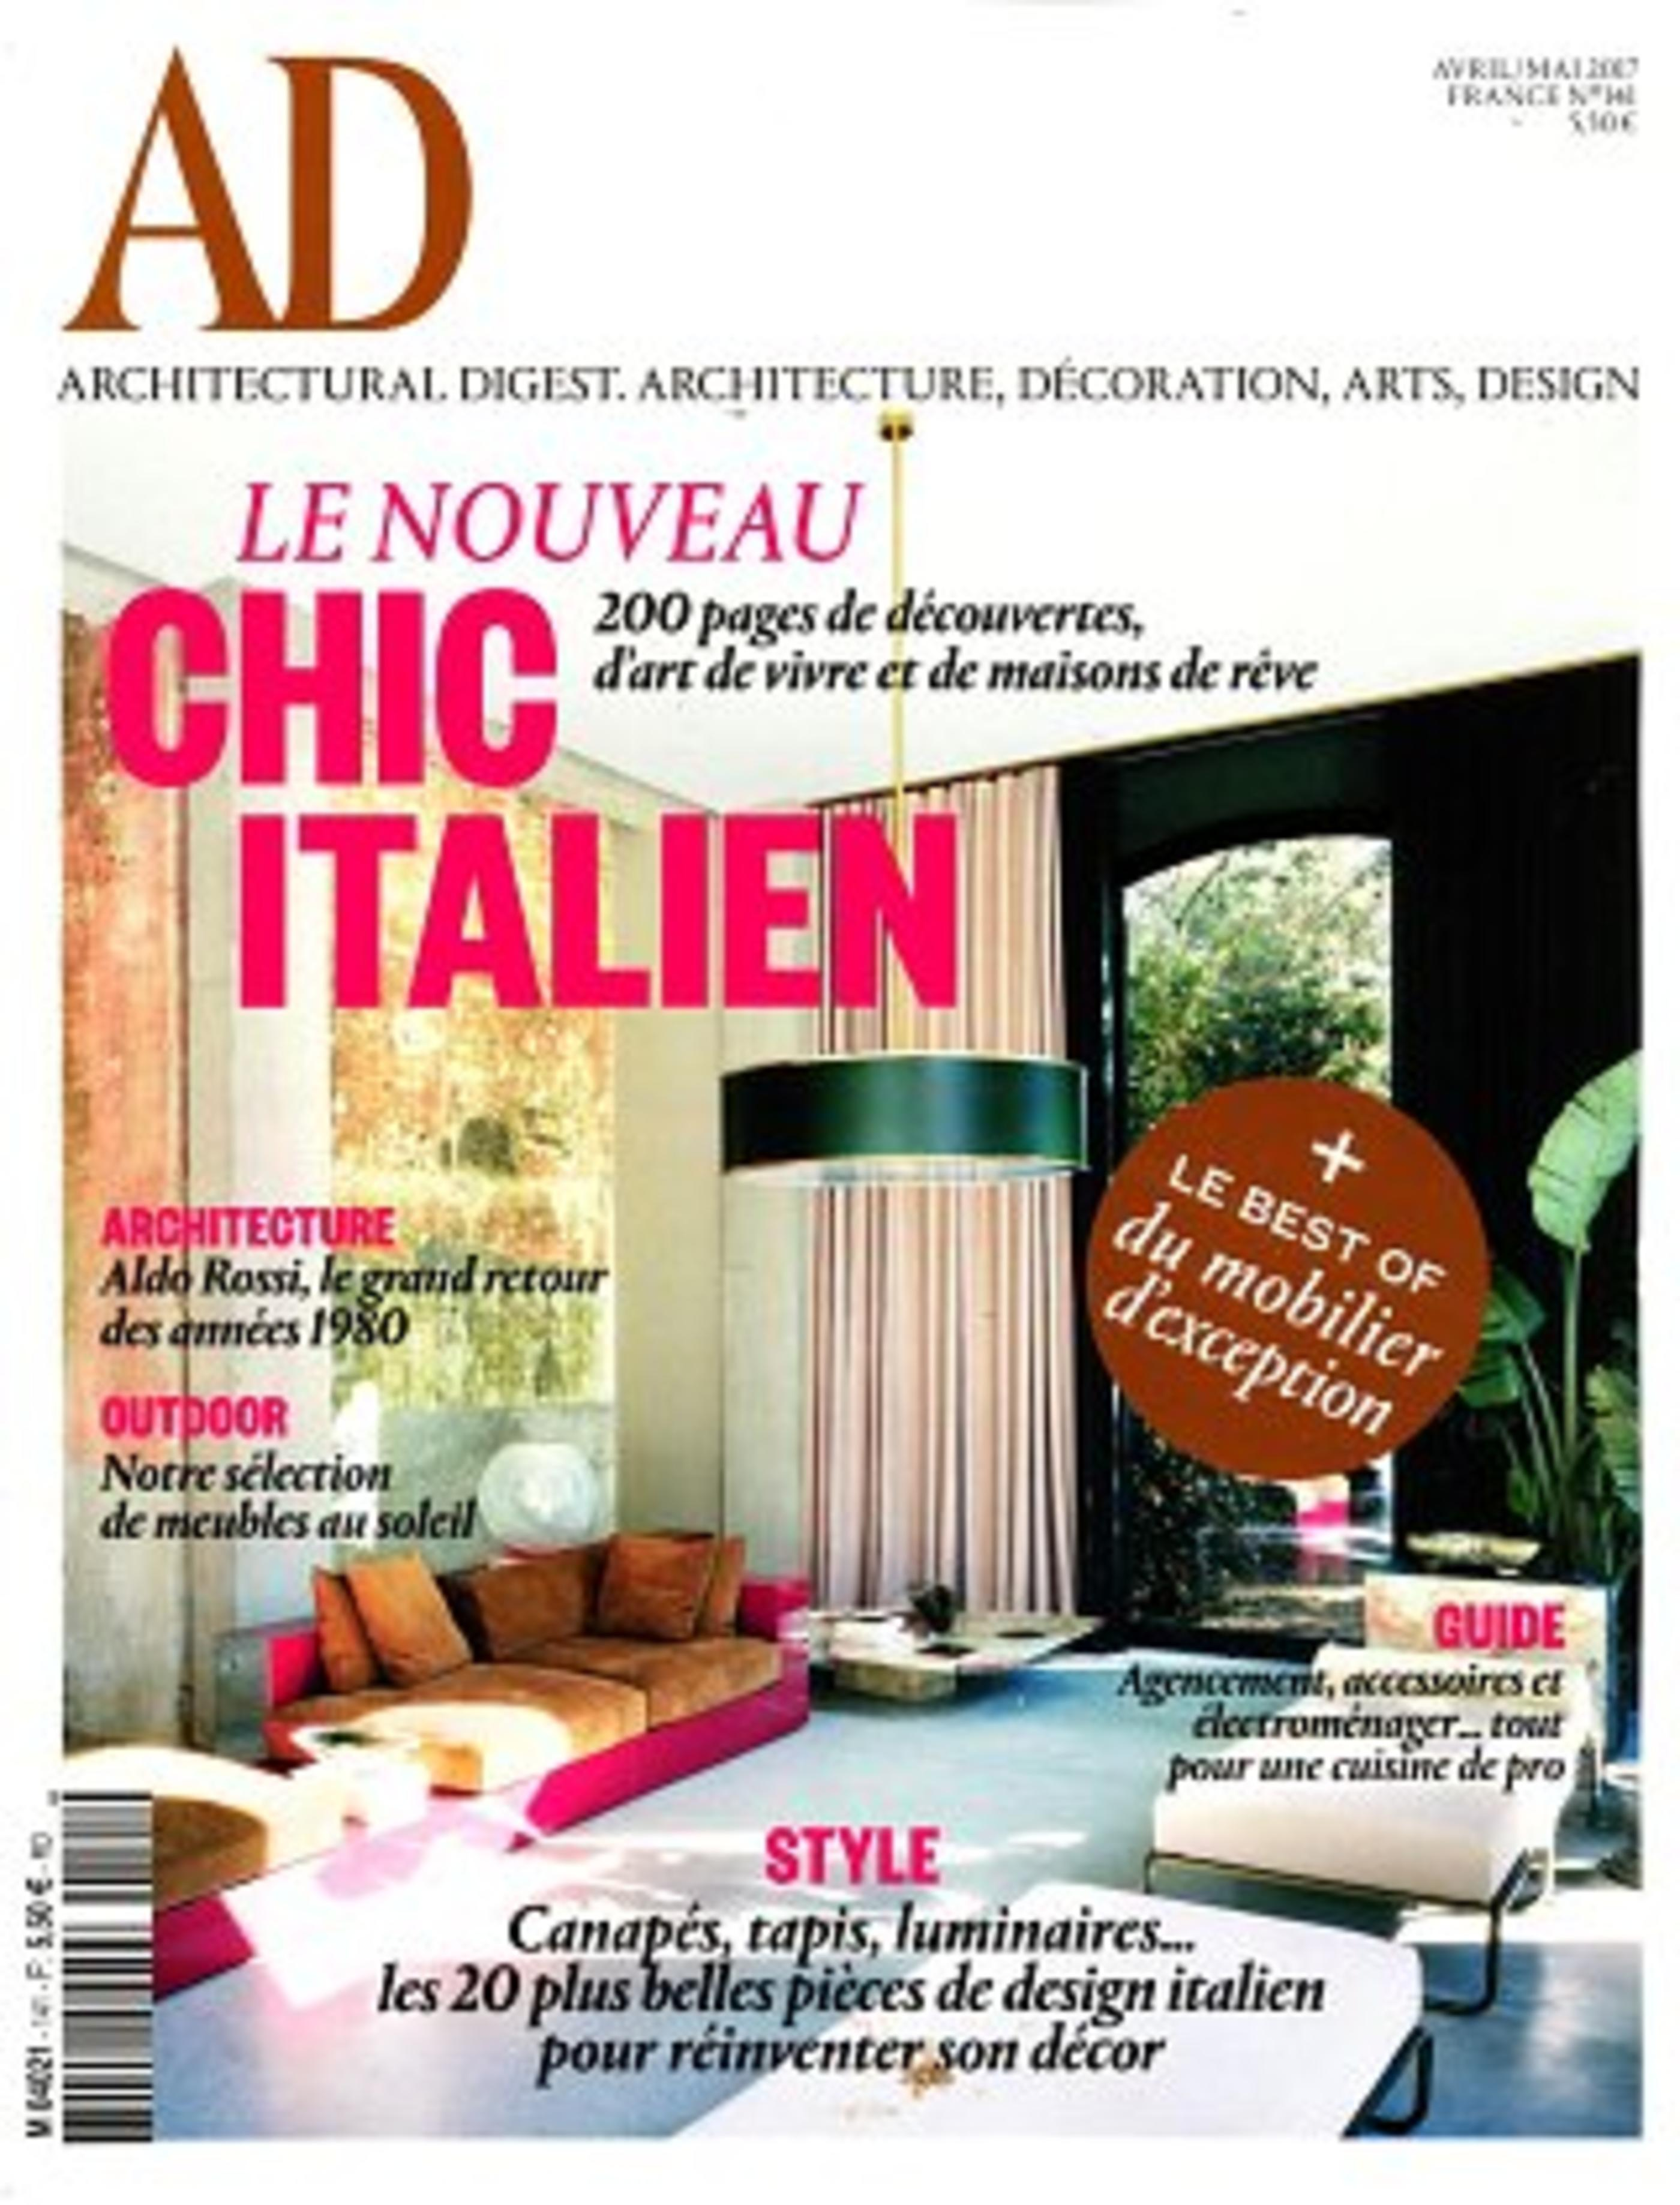 Couteau office Jean Dubost Pradel, fabrication 100% française, AD magazine avril-mai 2017